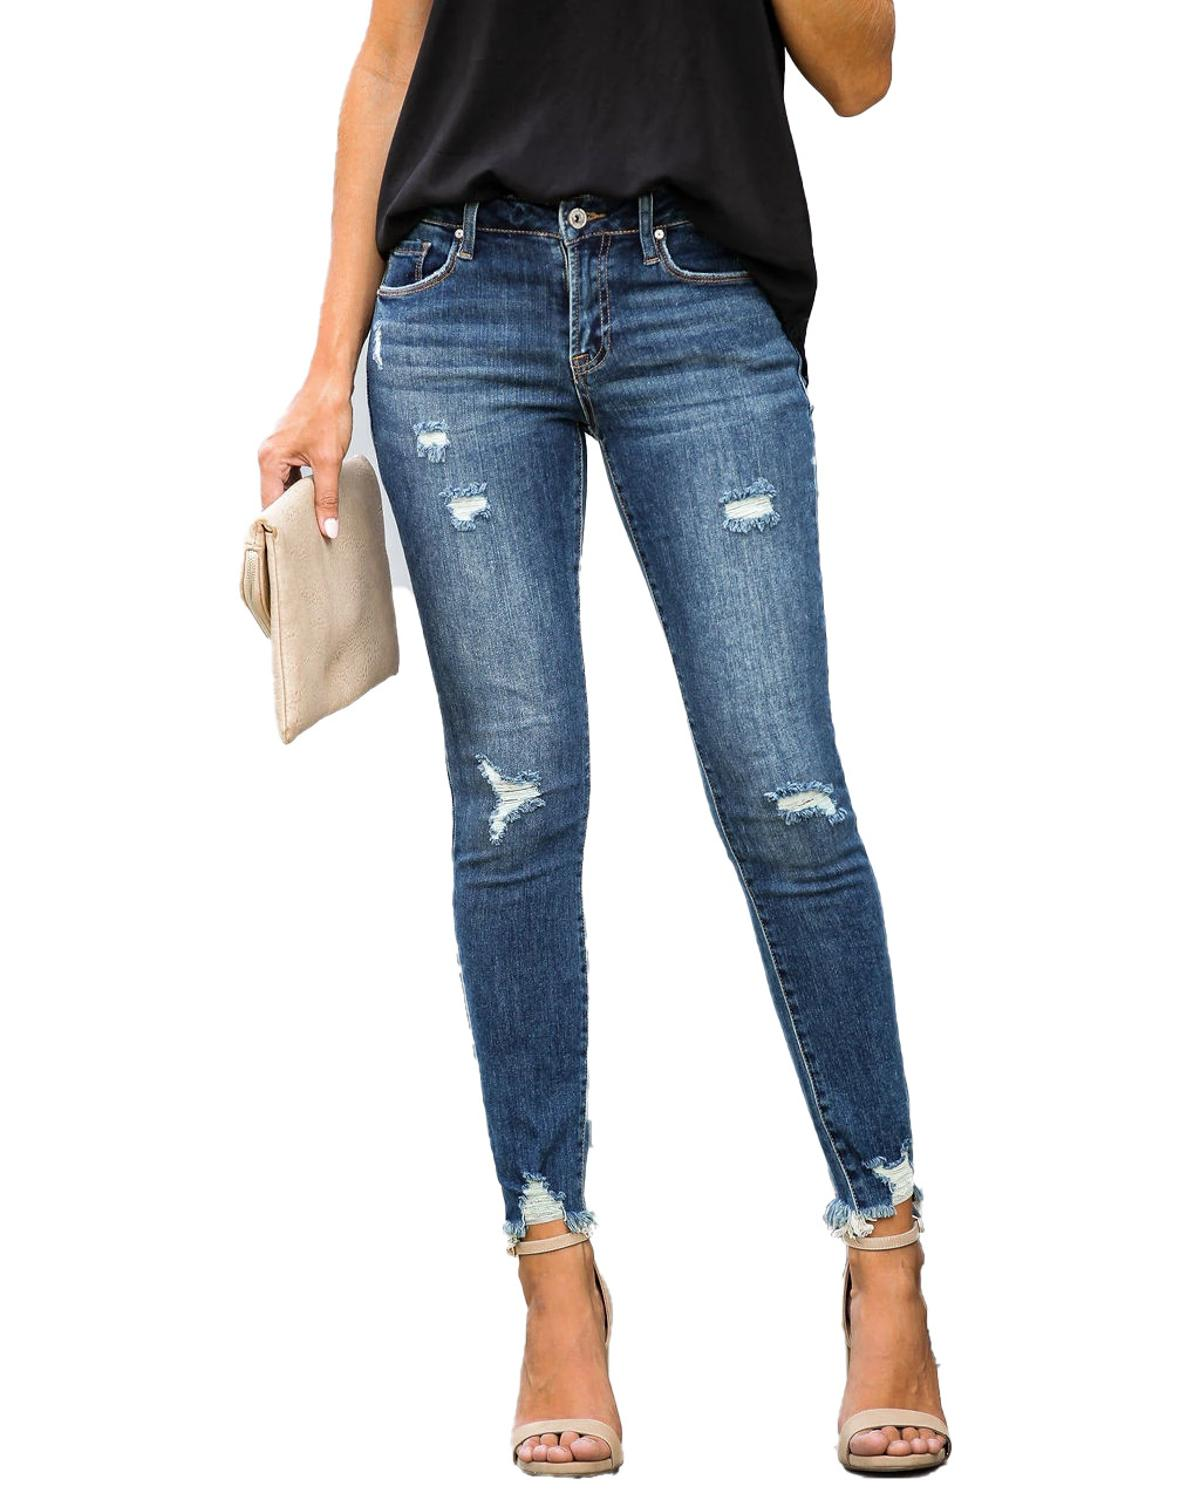 New Mid Waist Skinny Jeans Women Vintage Distressed Denim Pants Holes Destroyed Pencil Pants Casual Trousers